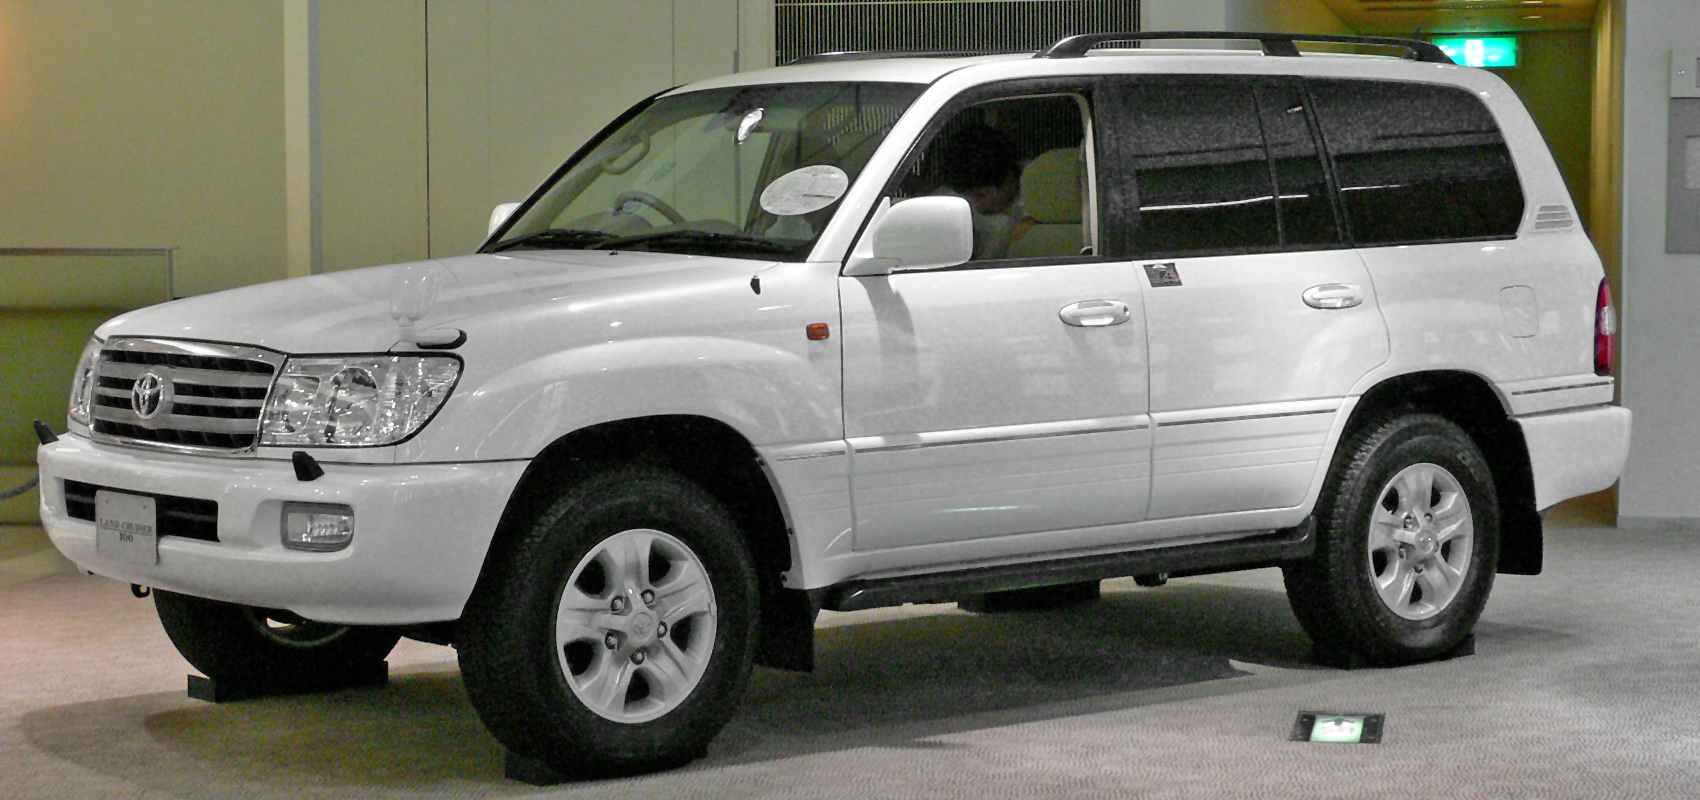 2001 Toyota Land Cruiser Prado J9 Pictures Information And Images 4